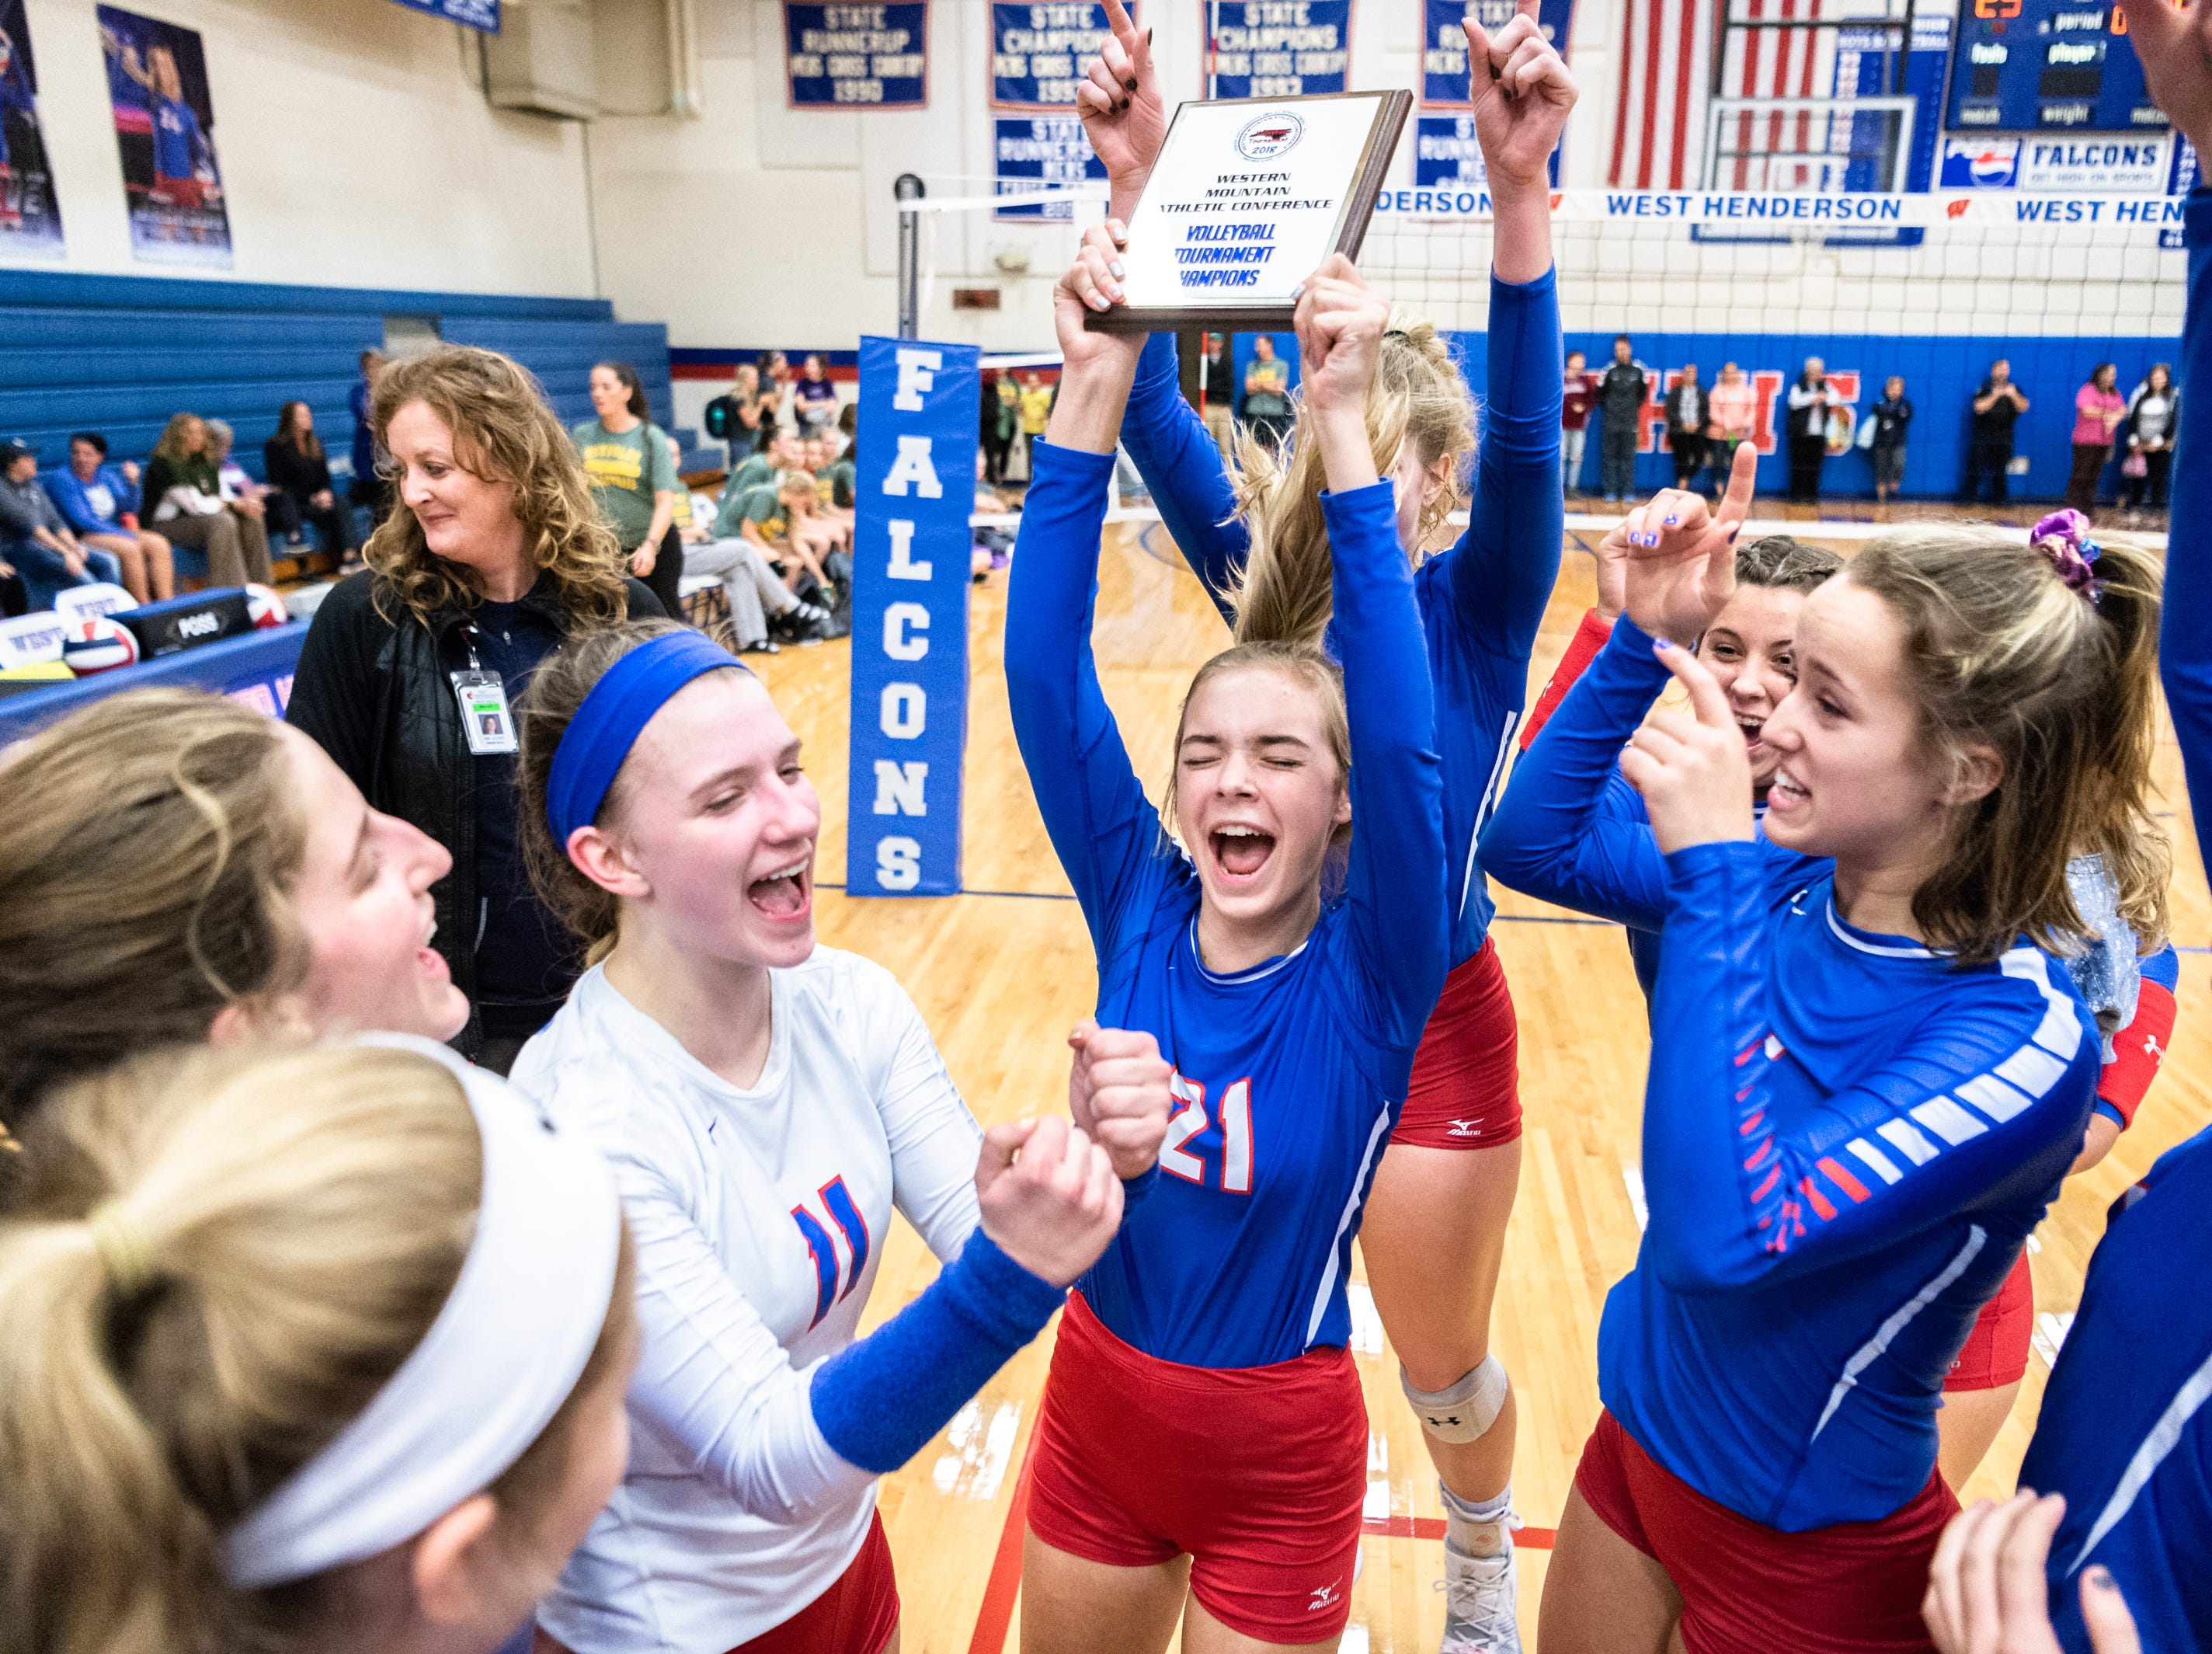 The West Henderson volleyball team celebrates defeating Reynolds in their WMAC tournament championship volleyball game Oct. 18, 2018.